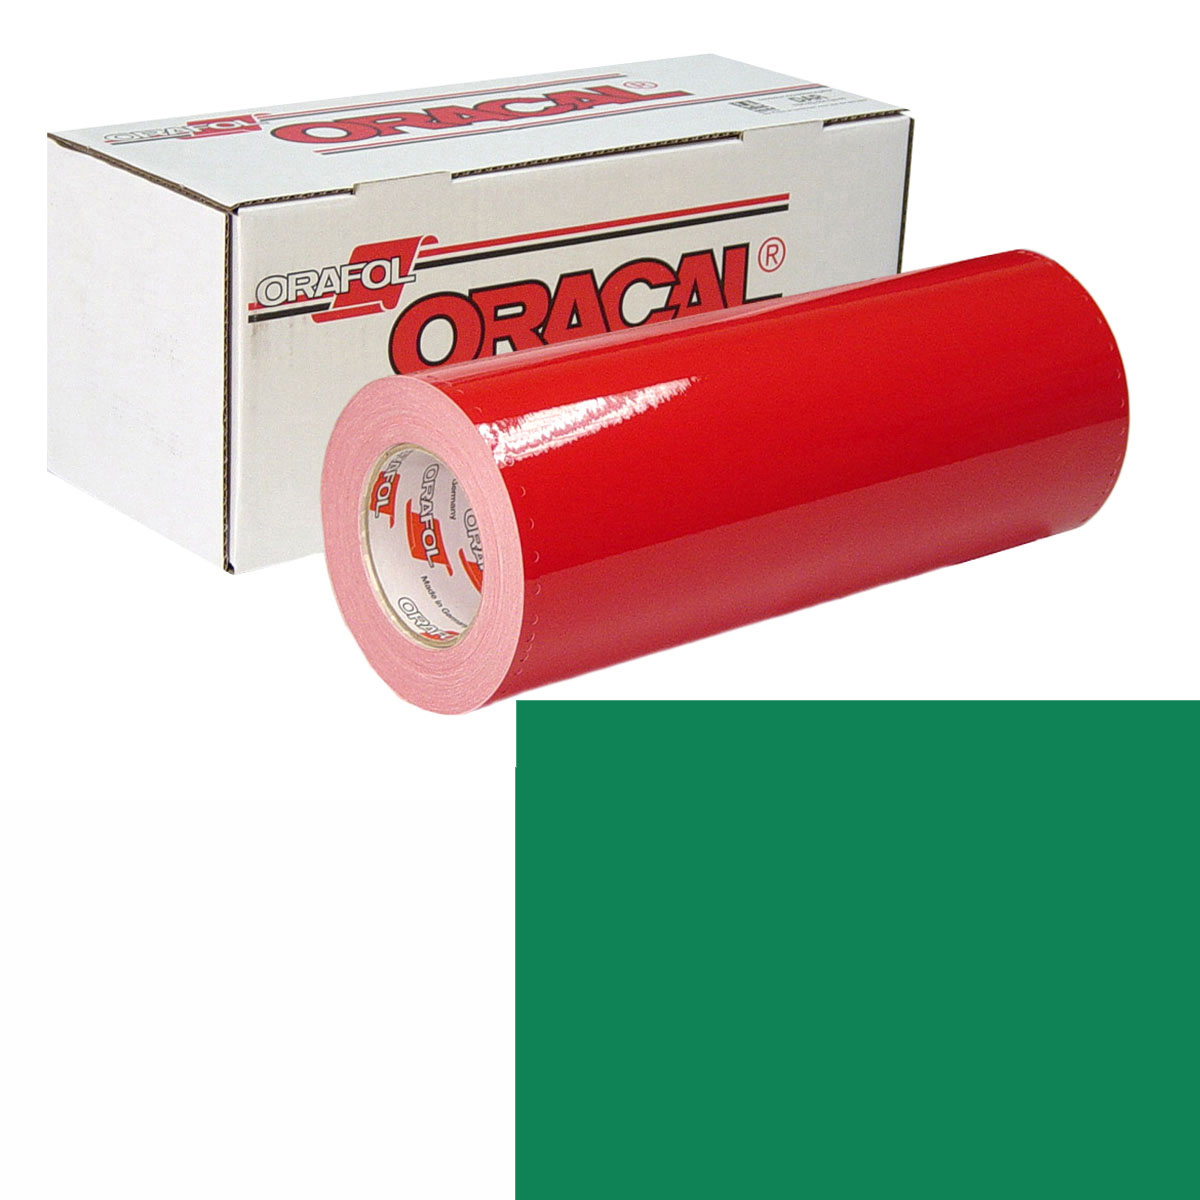 ORACAL 951 Unp 48In X 50Yd 603 Mint Green